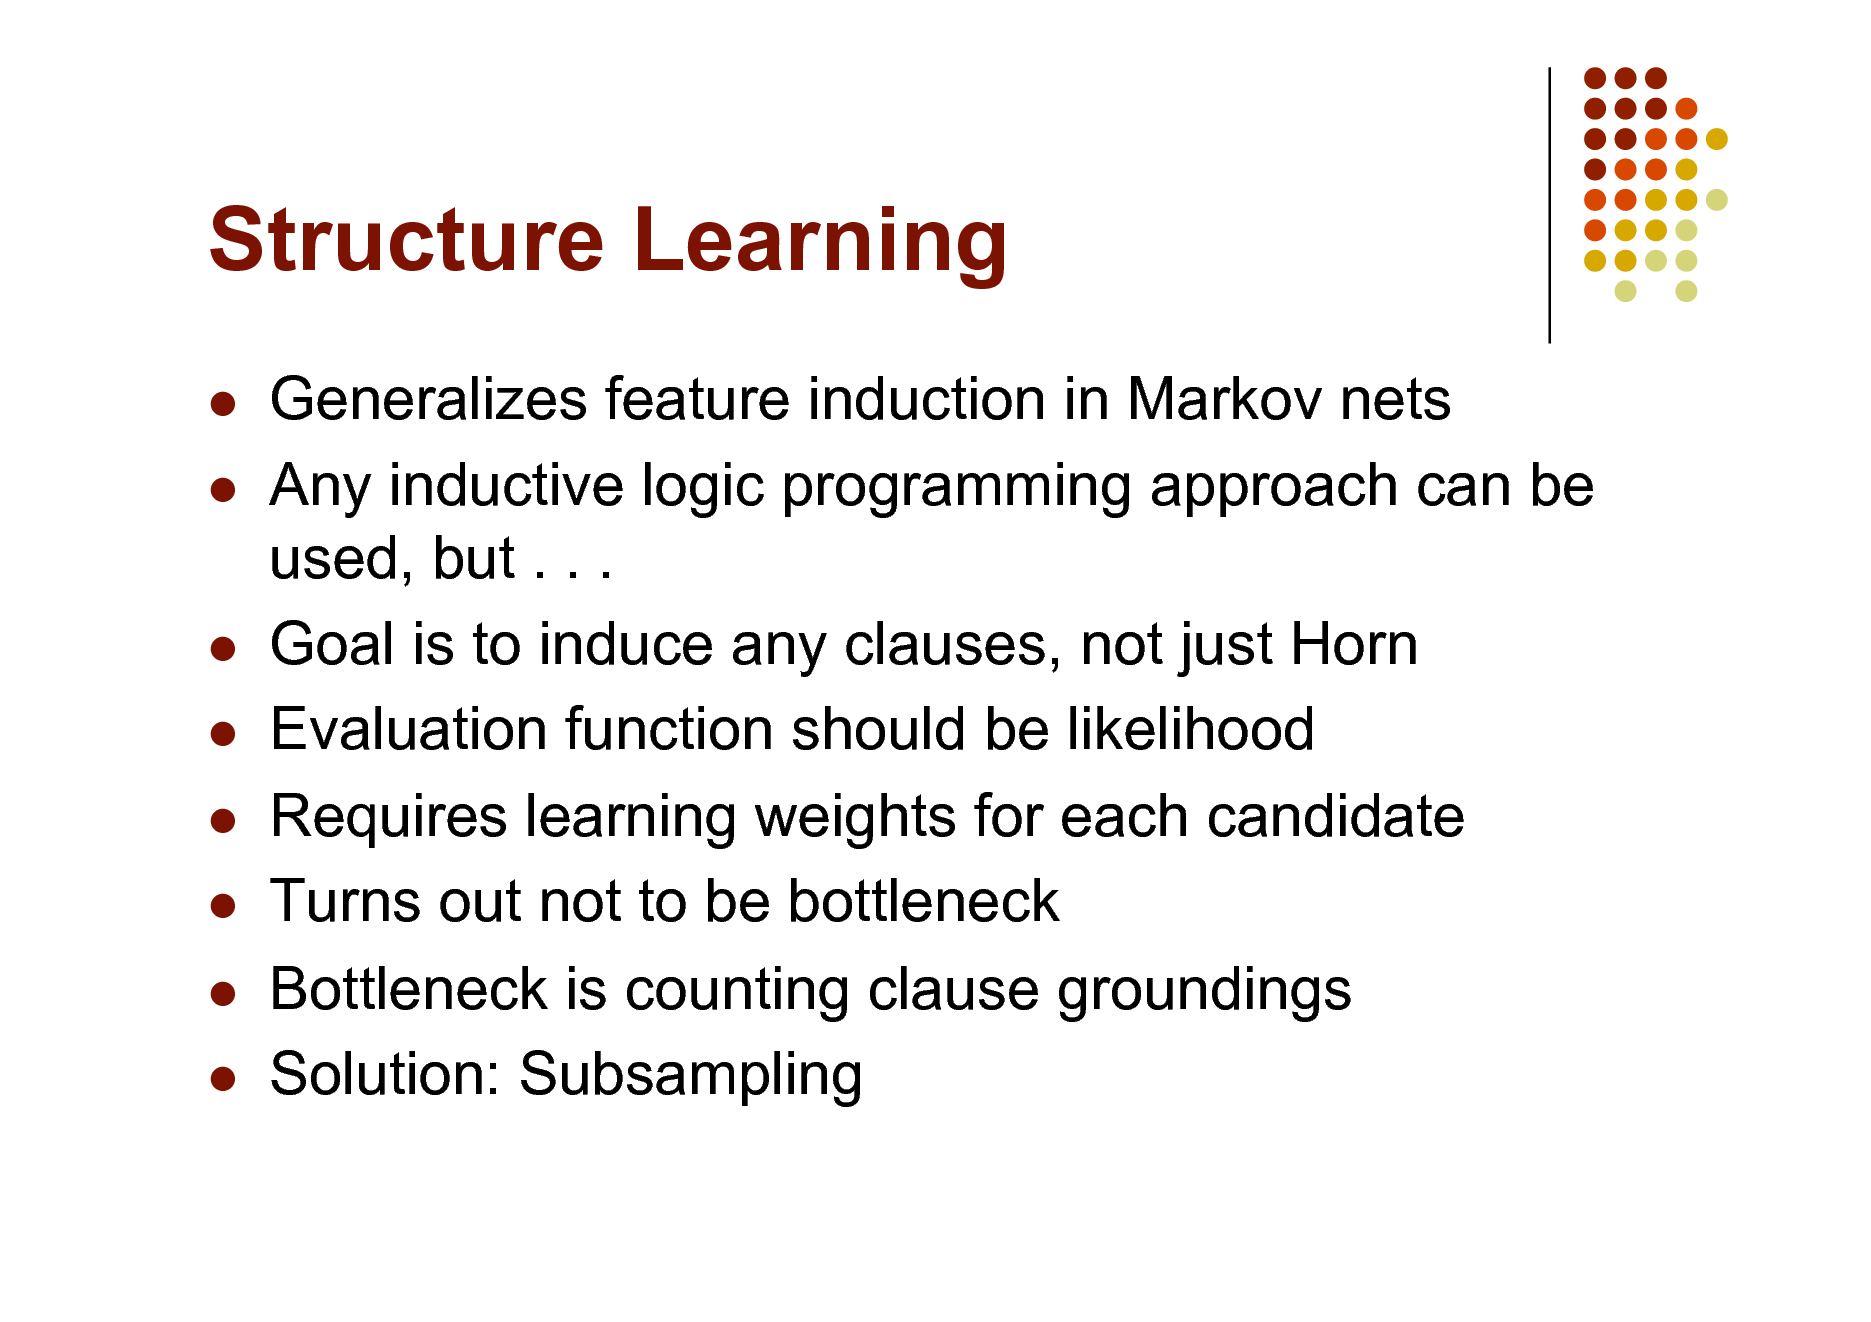 Slide: Structure Learning           Generalizes feature induction in Markov nets Any inductive logic programming approach can be used, but . . . Goal is to induce any clauses, not just Horn Evaluation function should be likelihood Requires learning weights for each candidate Turns out not to be bottleneck Bottleneck is counting clause groundings Solution: Subsampling